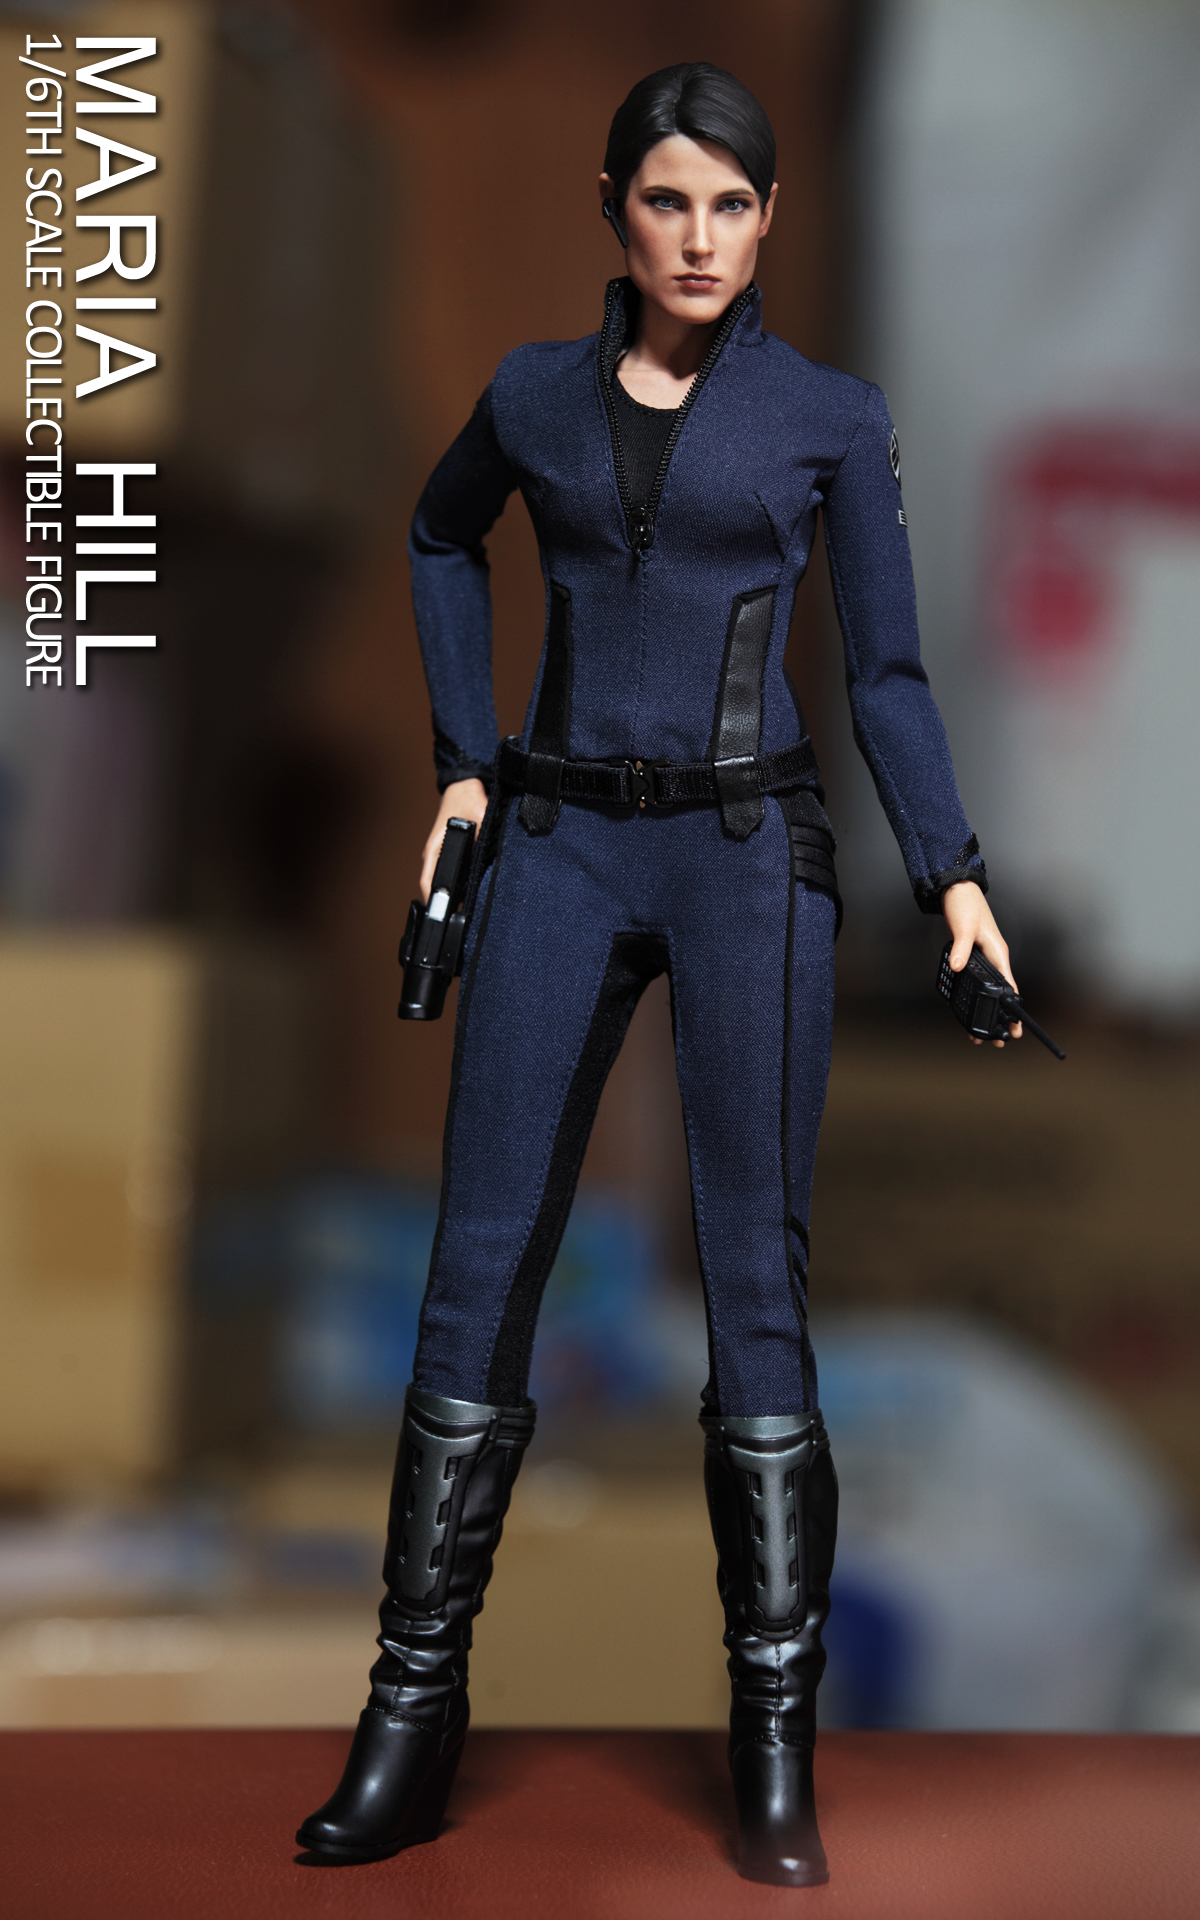 hottoys-avengers-age-of-ultron-maria-hill-picture04